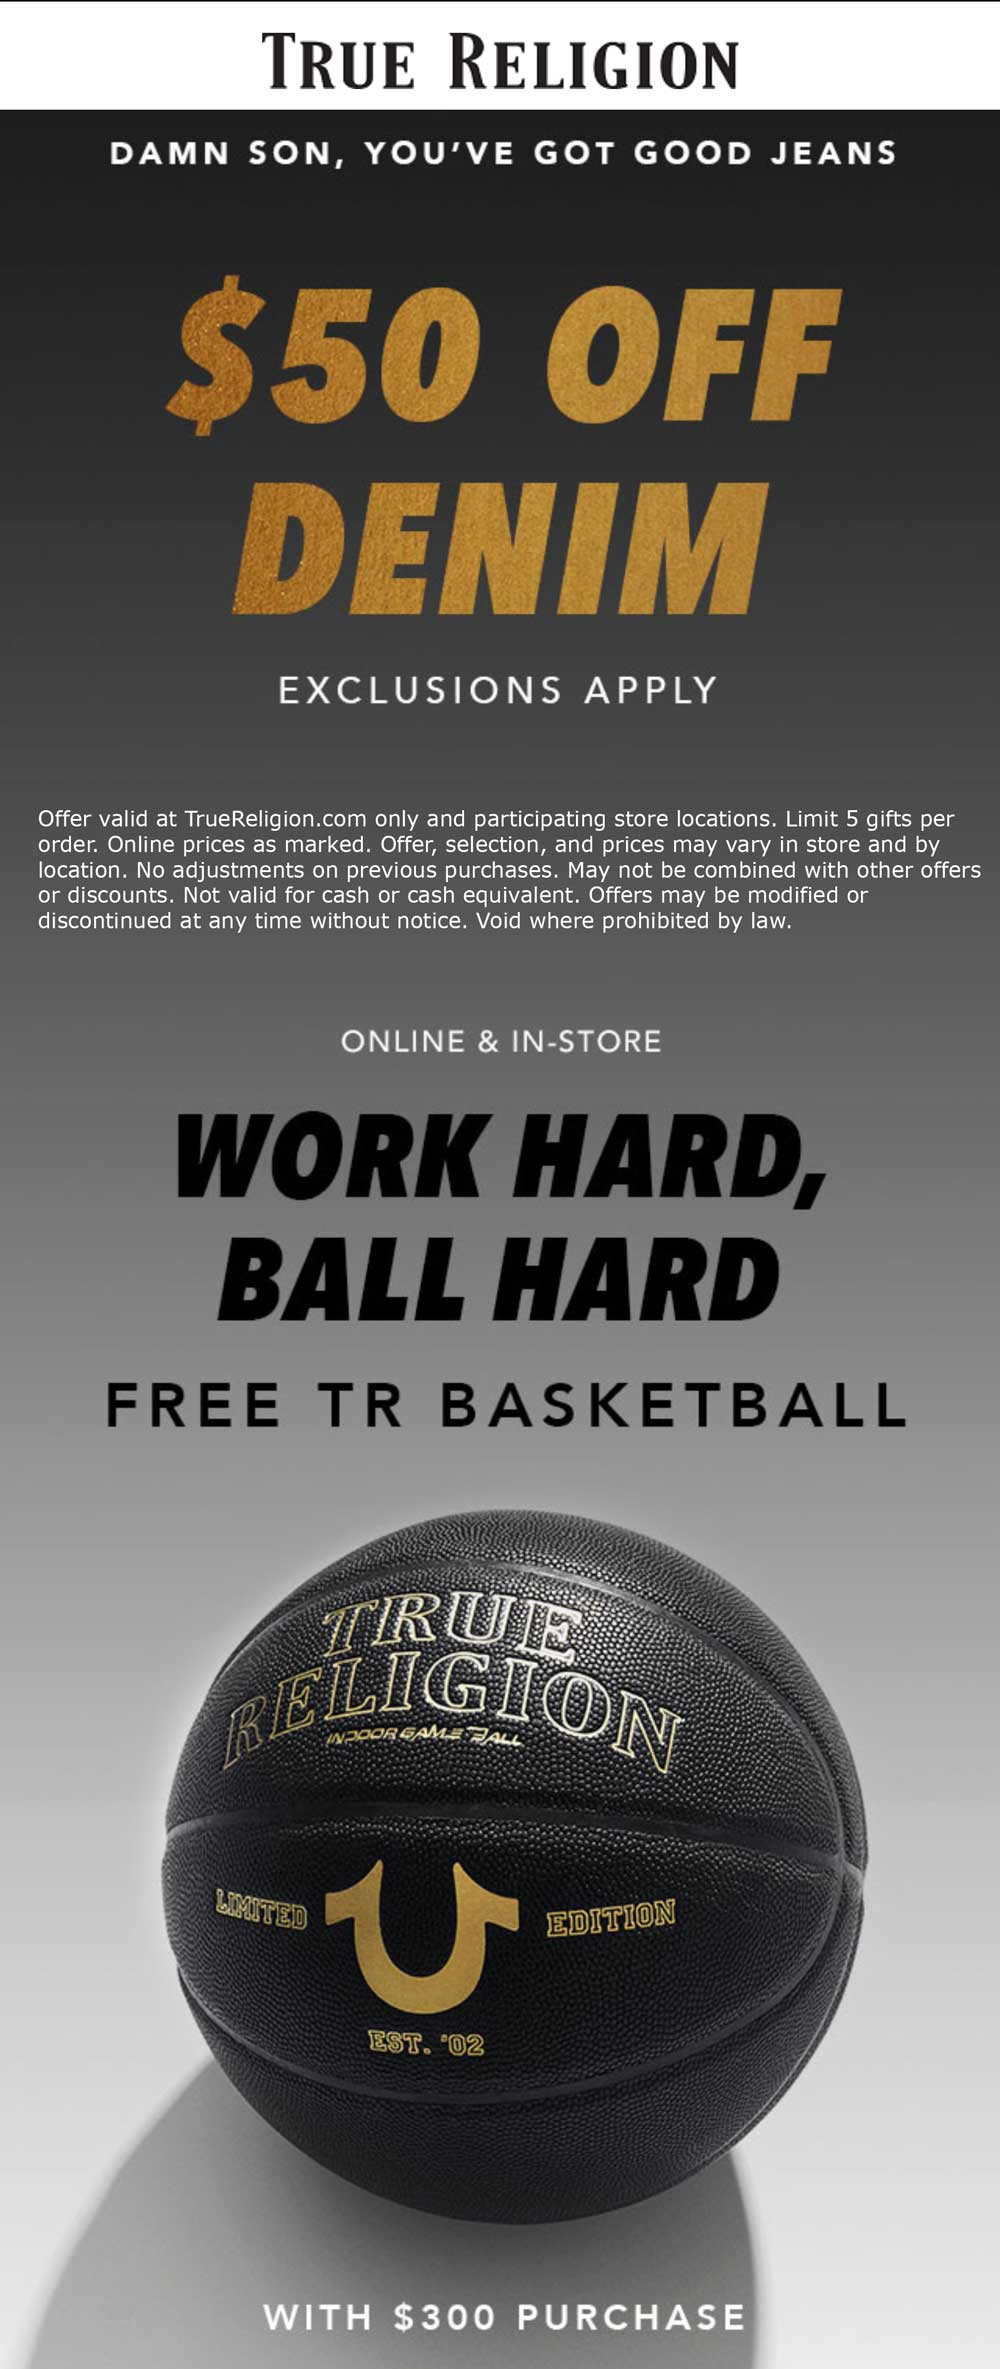 True Religion Coupon December 2018 $50 off jeans + free basketball at True Religion, ditto online